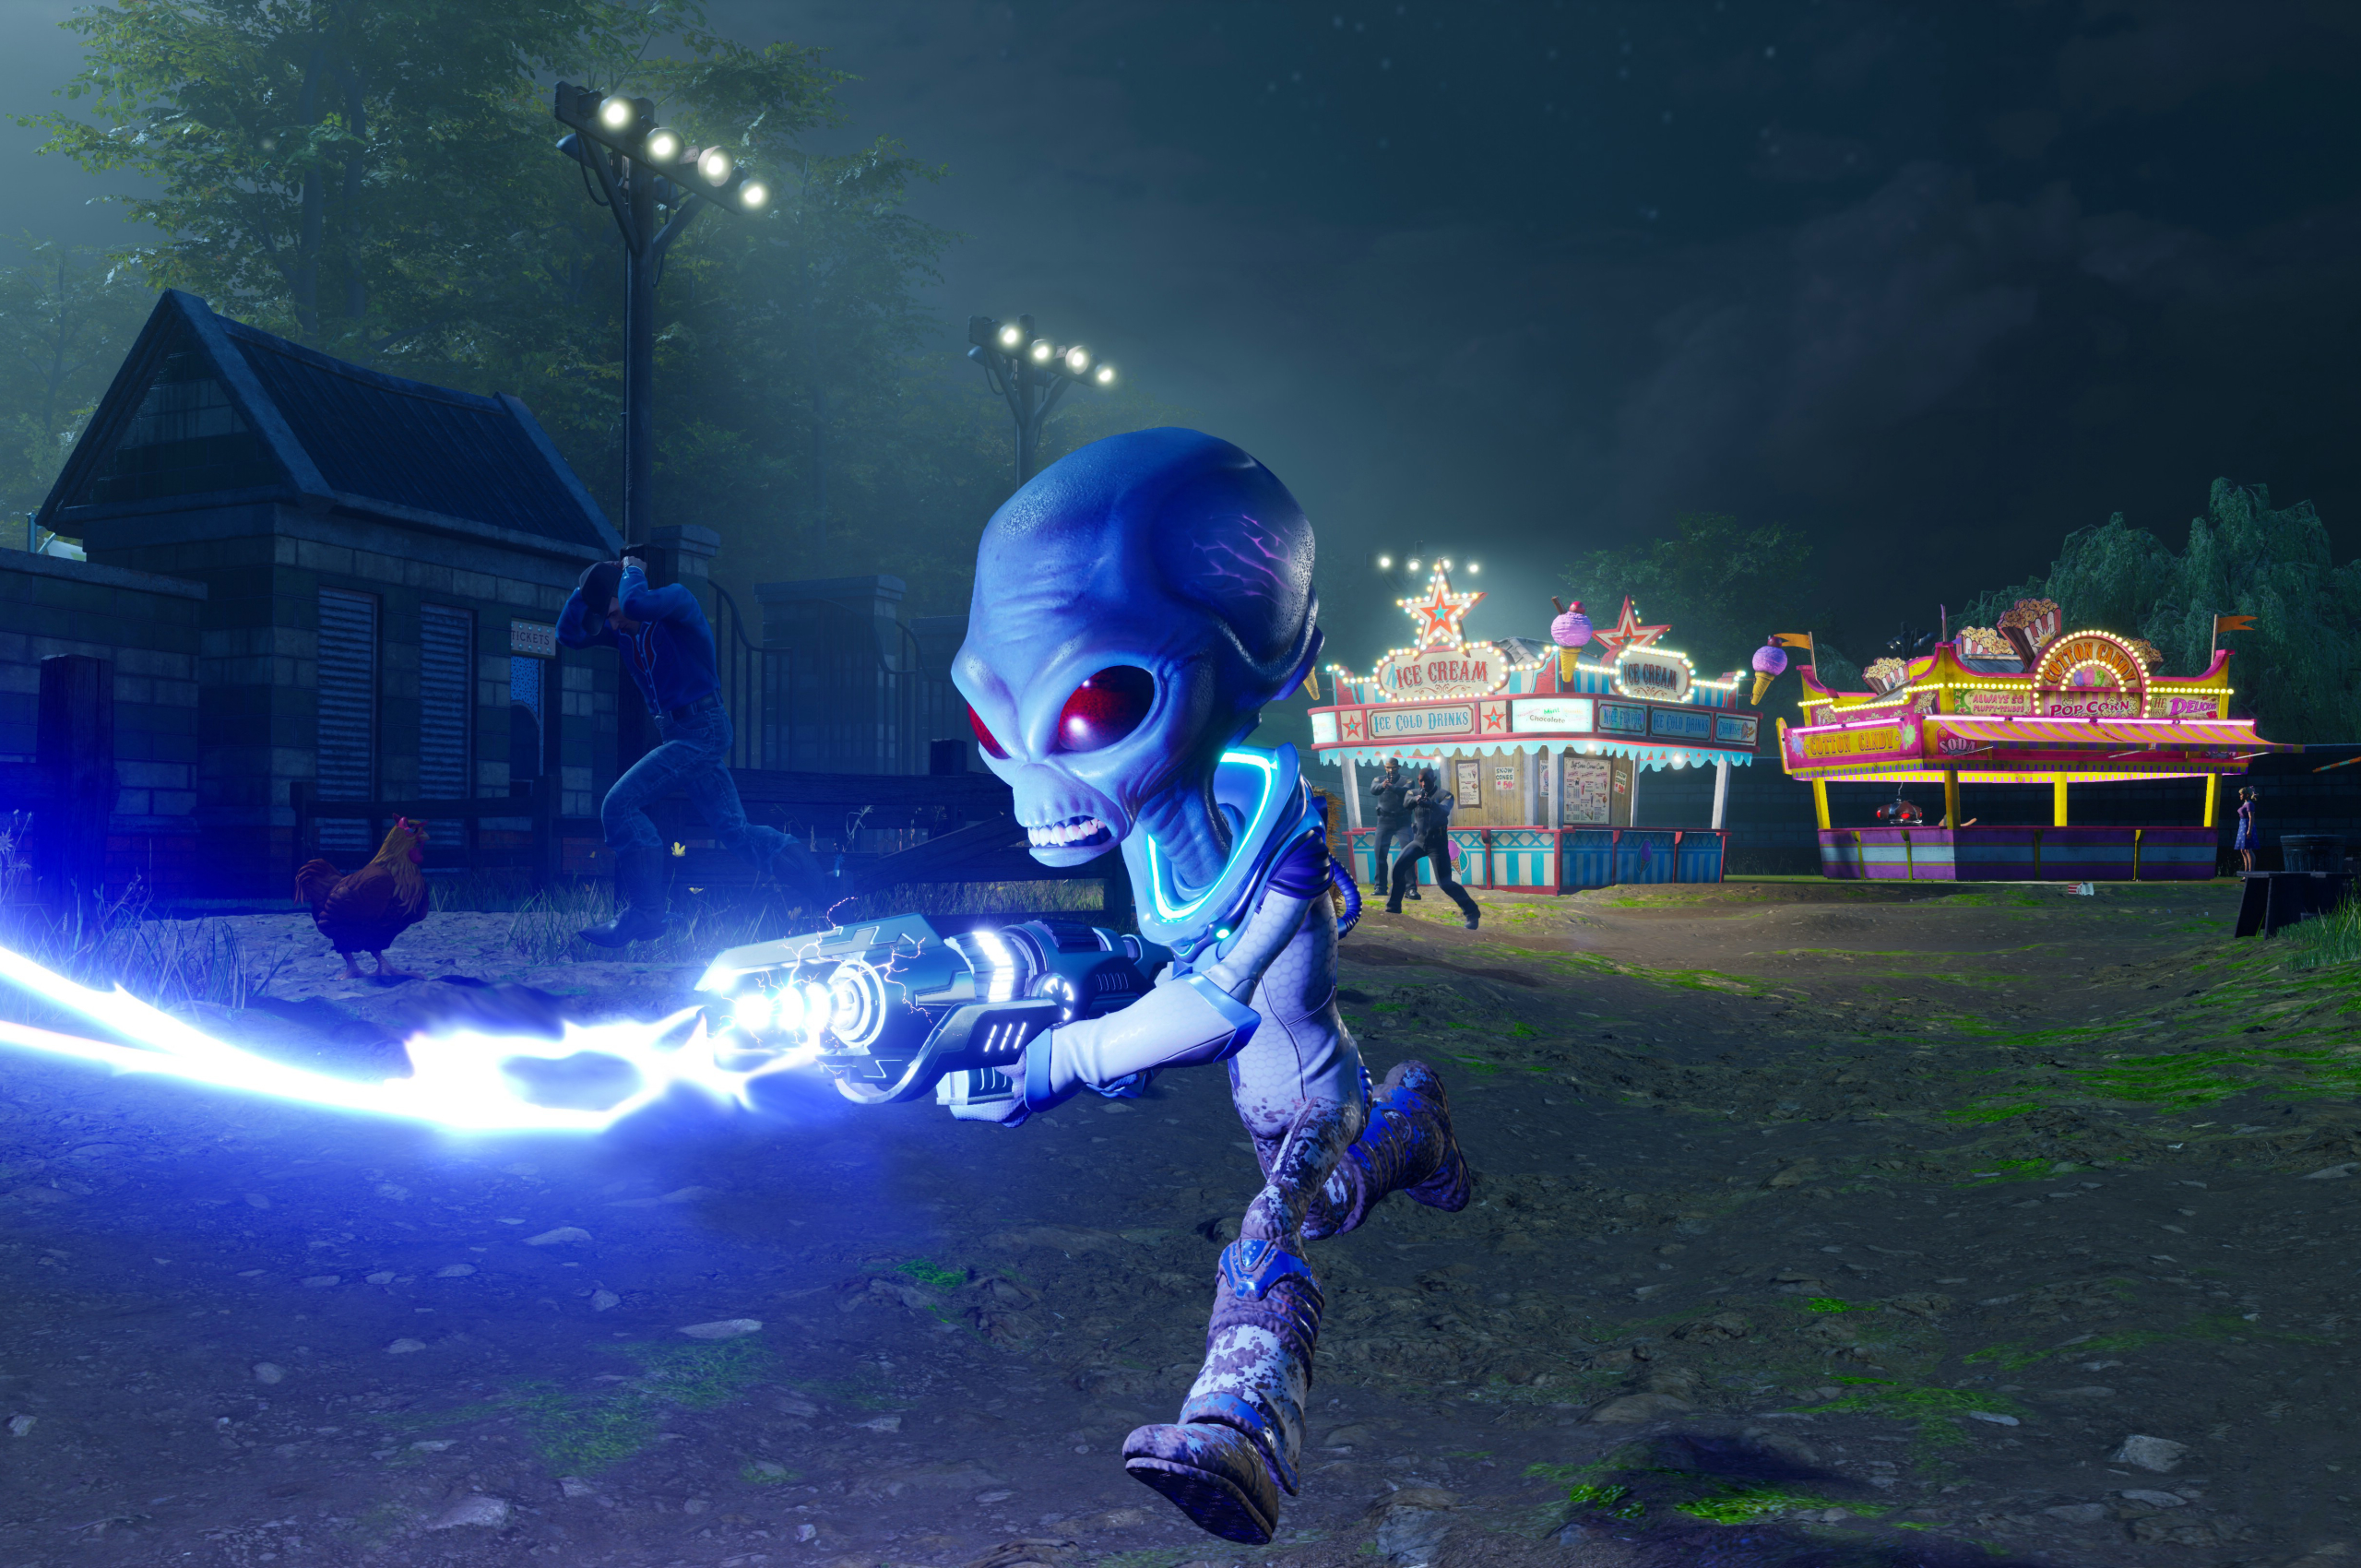 Destroy All Humans 2020 Wallpaper in 2560x1700 Resolution